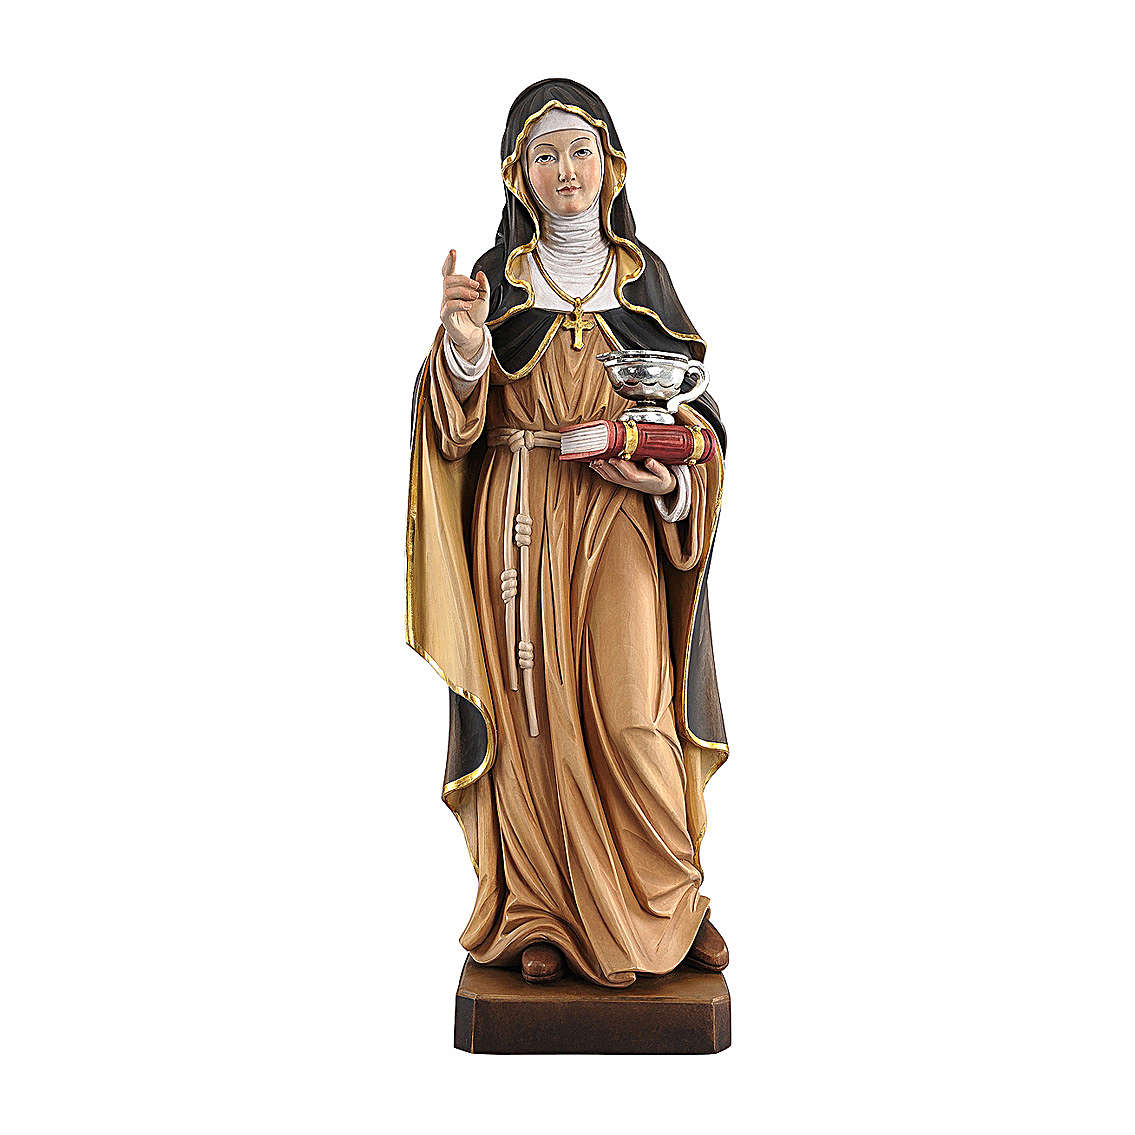 Saint Hildegard with vase painted in maple wood of Valgardena 4